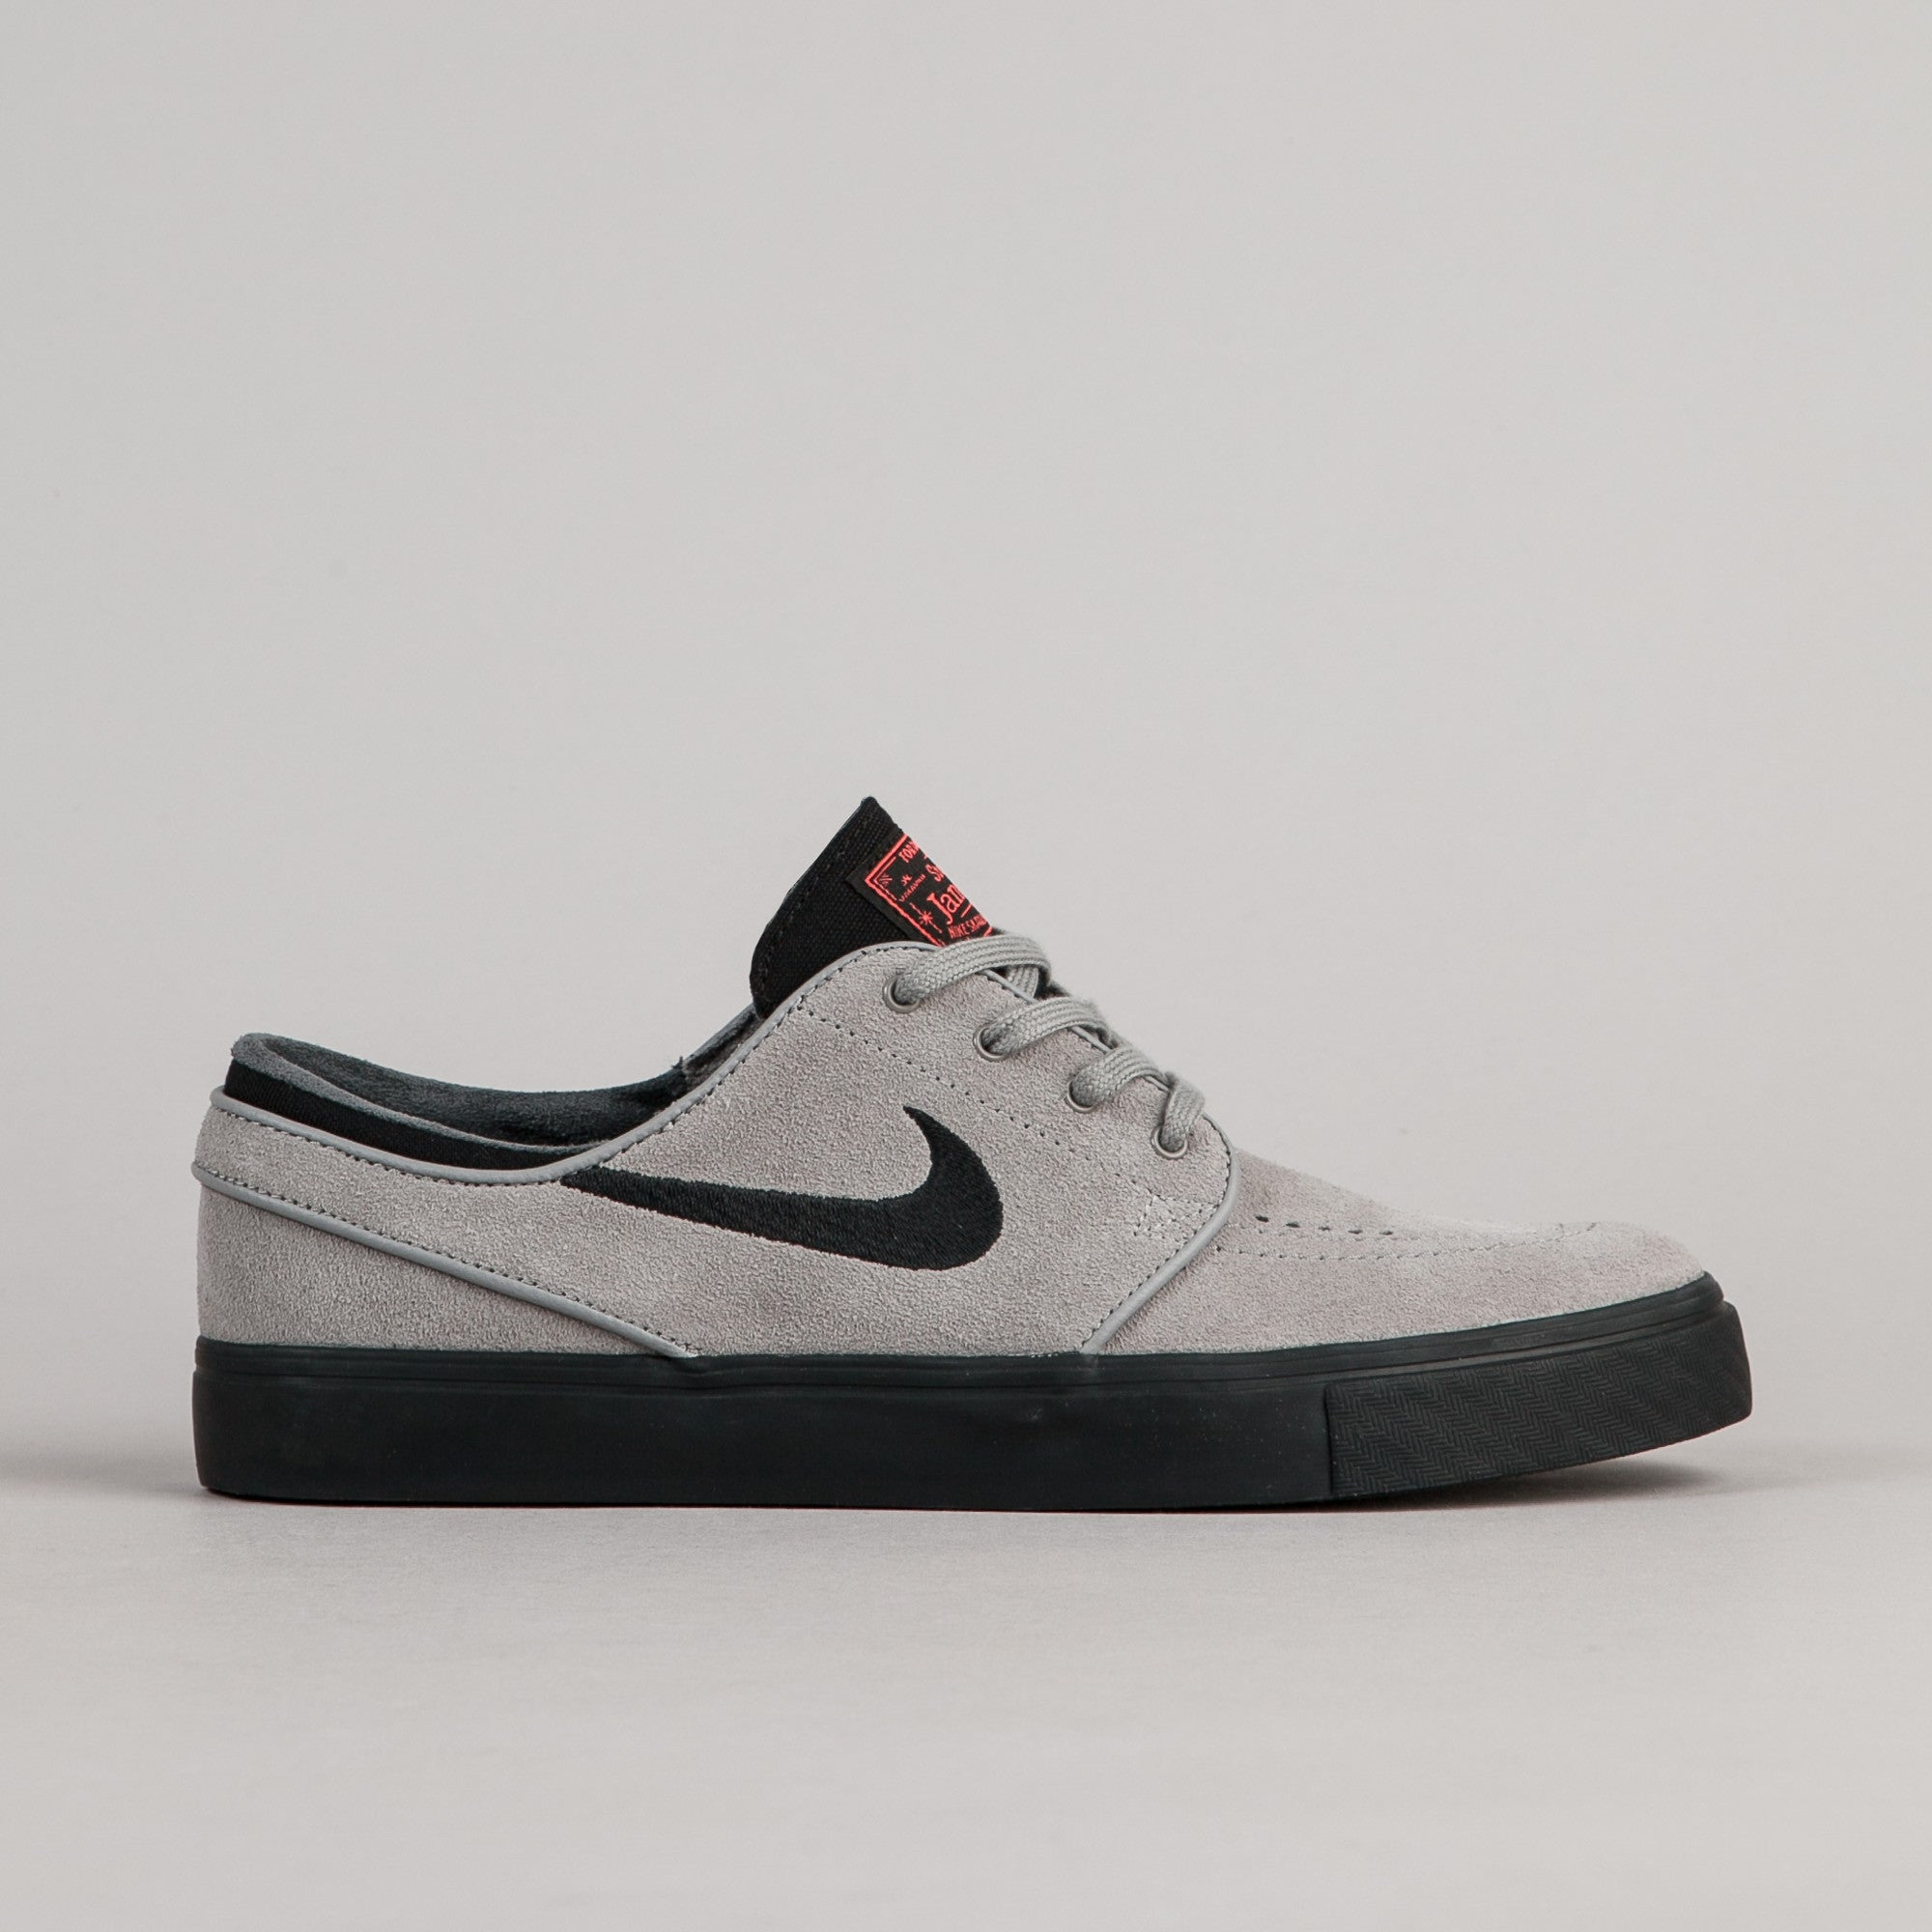 nike sb stefan janoski shoes dust black ember glow. Black Bedroom Furniture Sets. Home Design Ideas